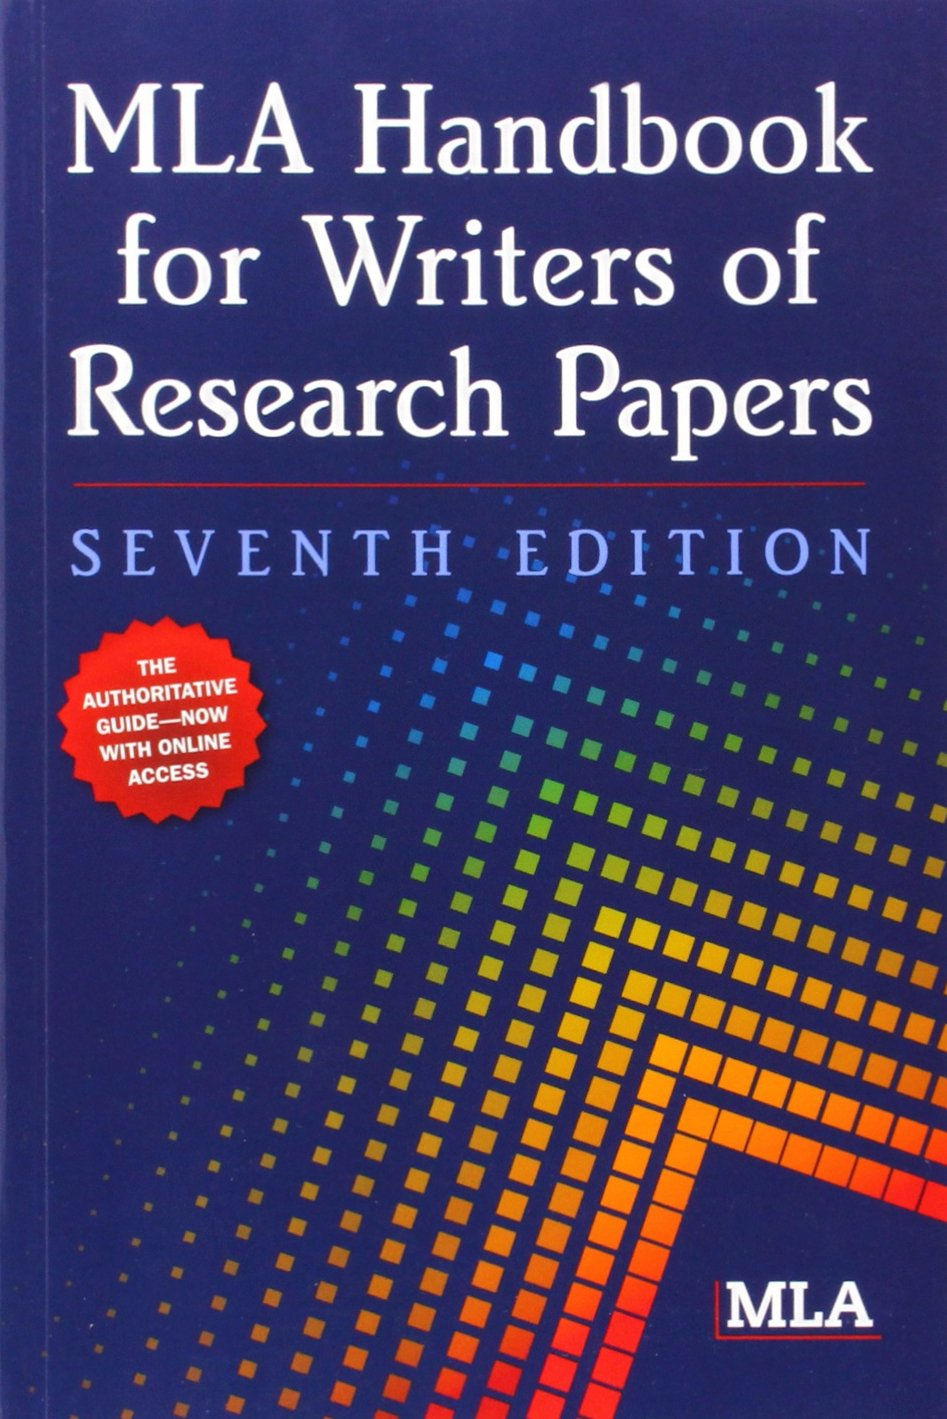 003 Mla Handbook For Writing Researchs Pdf 71lknvqs6gl Beautiful Research Papers Writers Of 7th Edition Free 6th 2009 Full